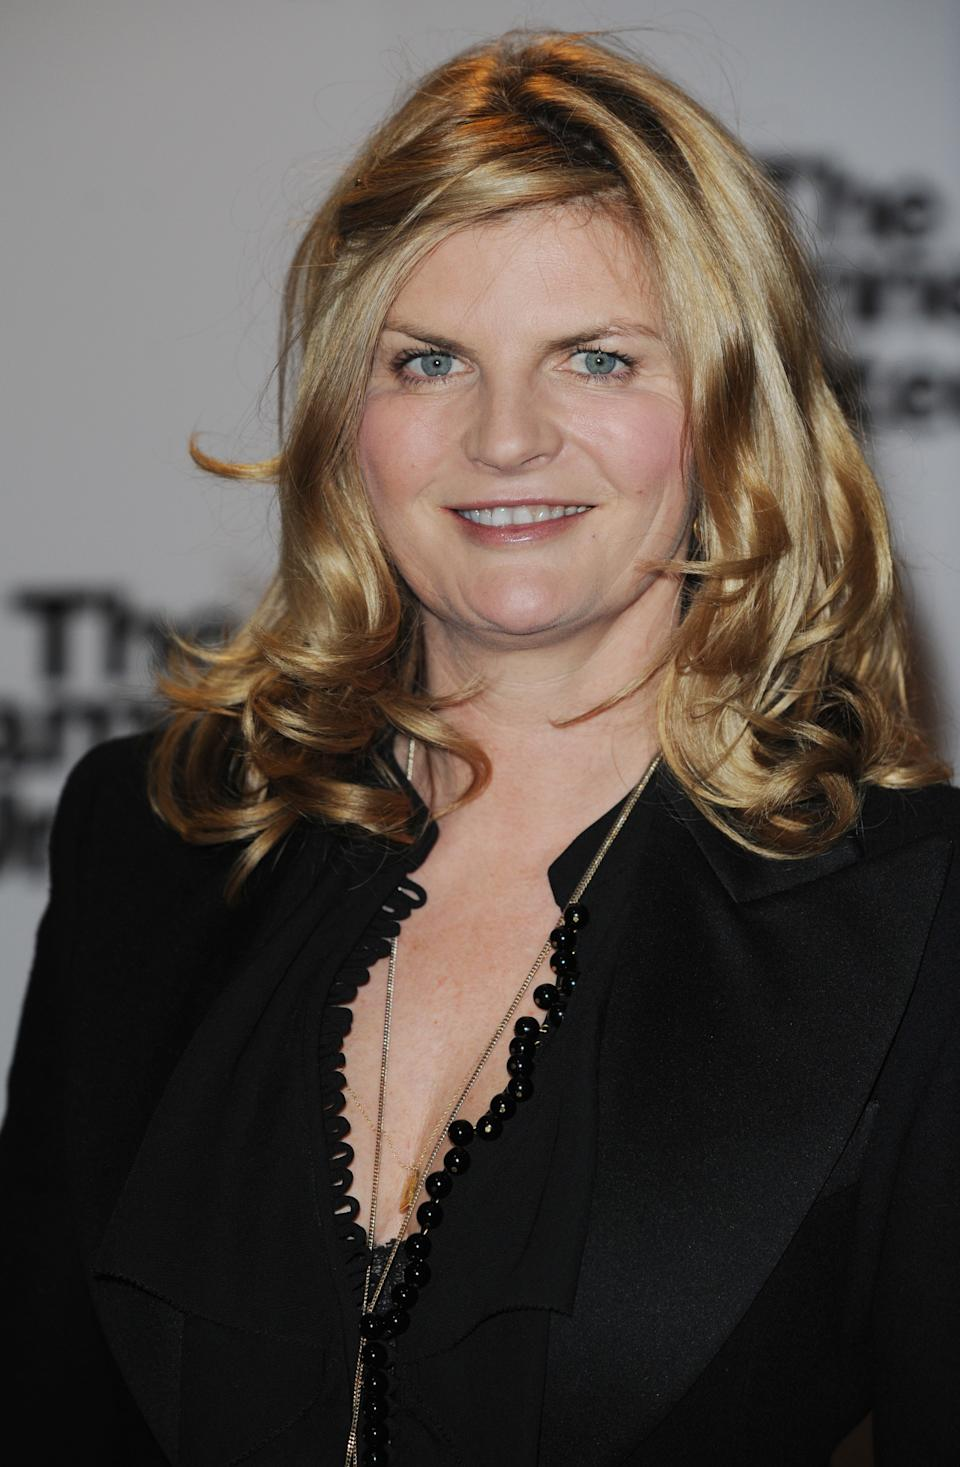 Susannah Constantine arriving at the premiere of The Damned United at the Vue Cinema in London.